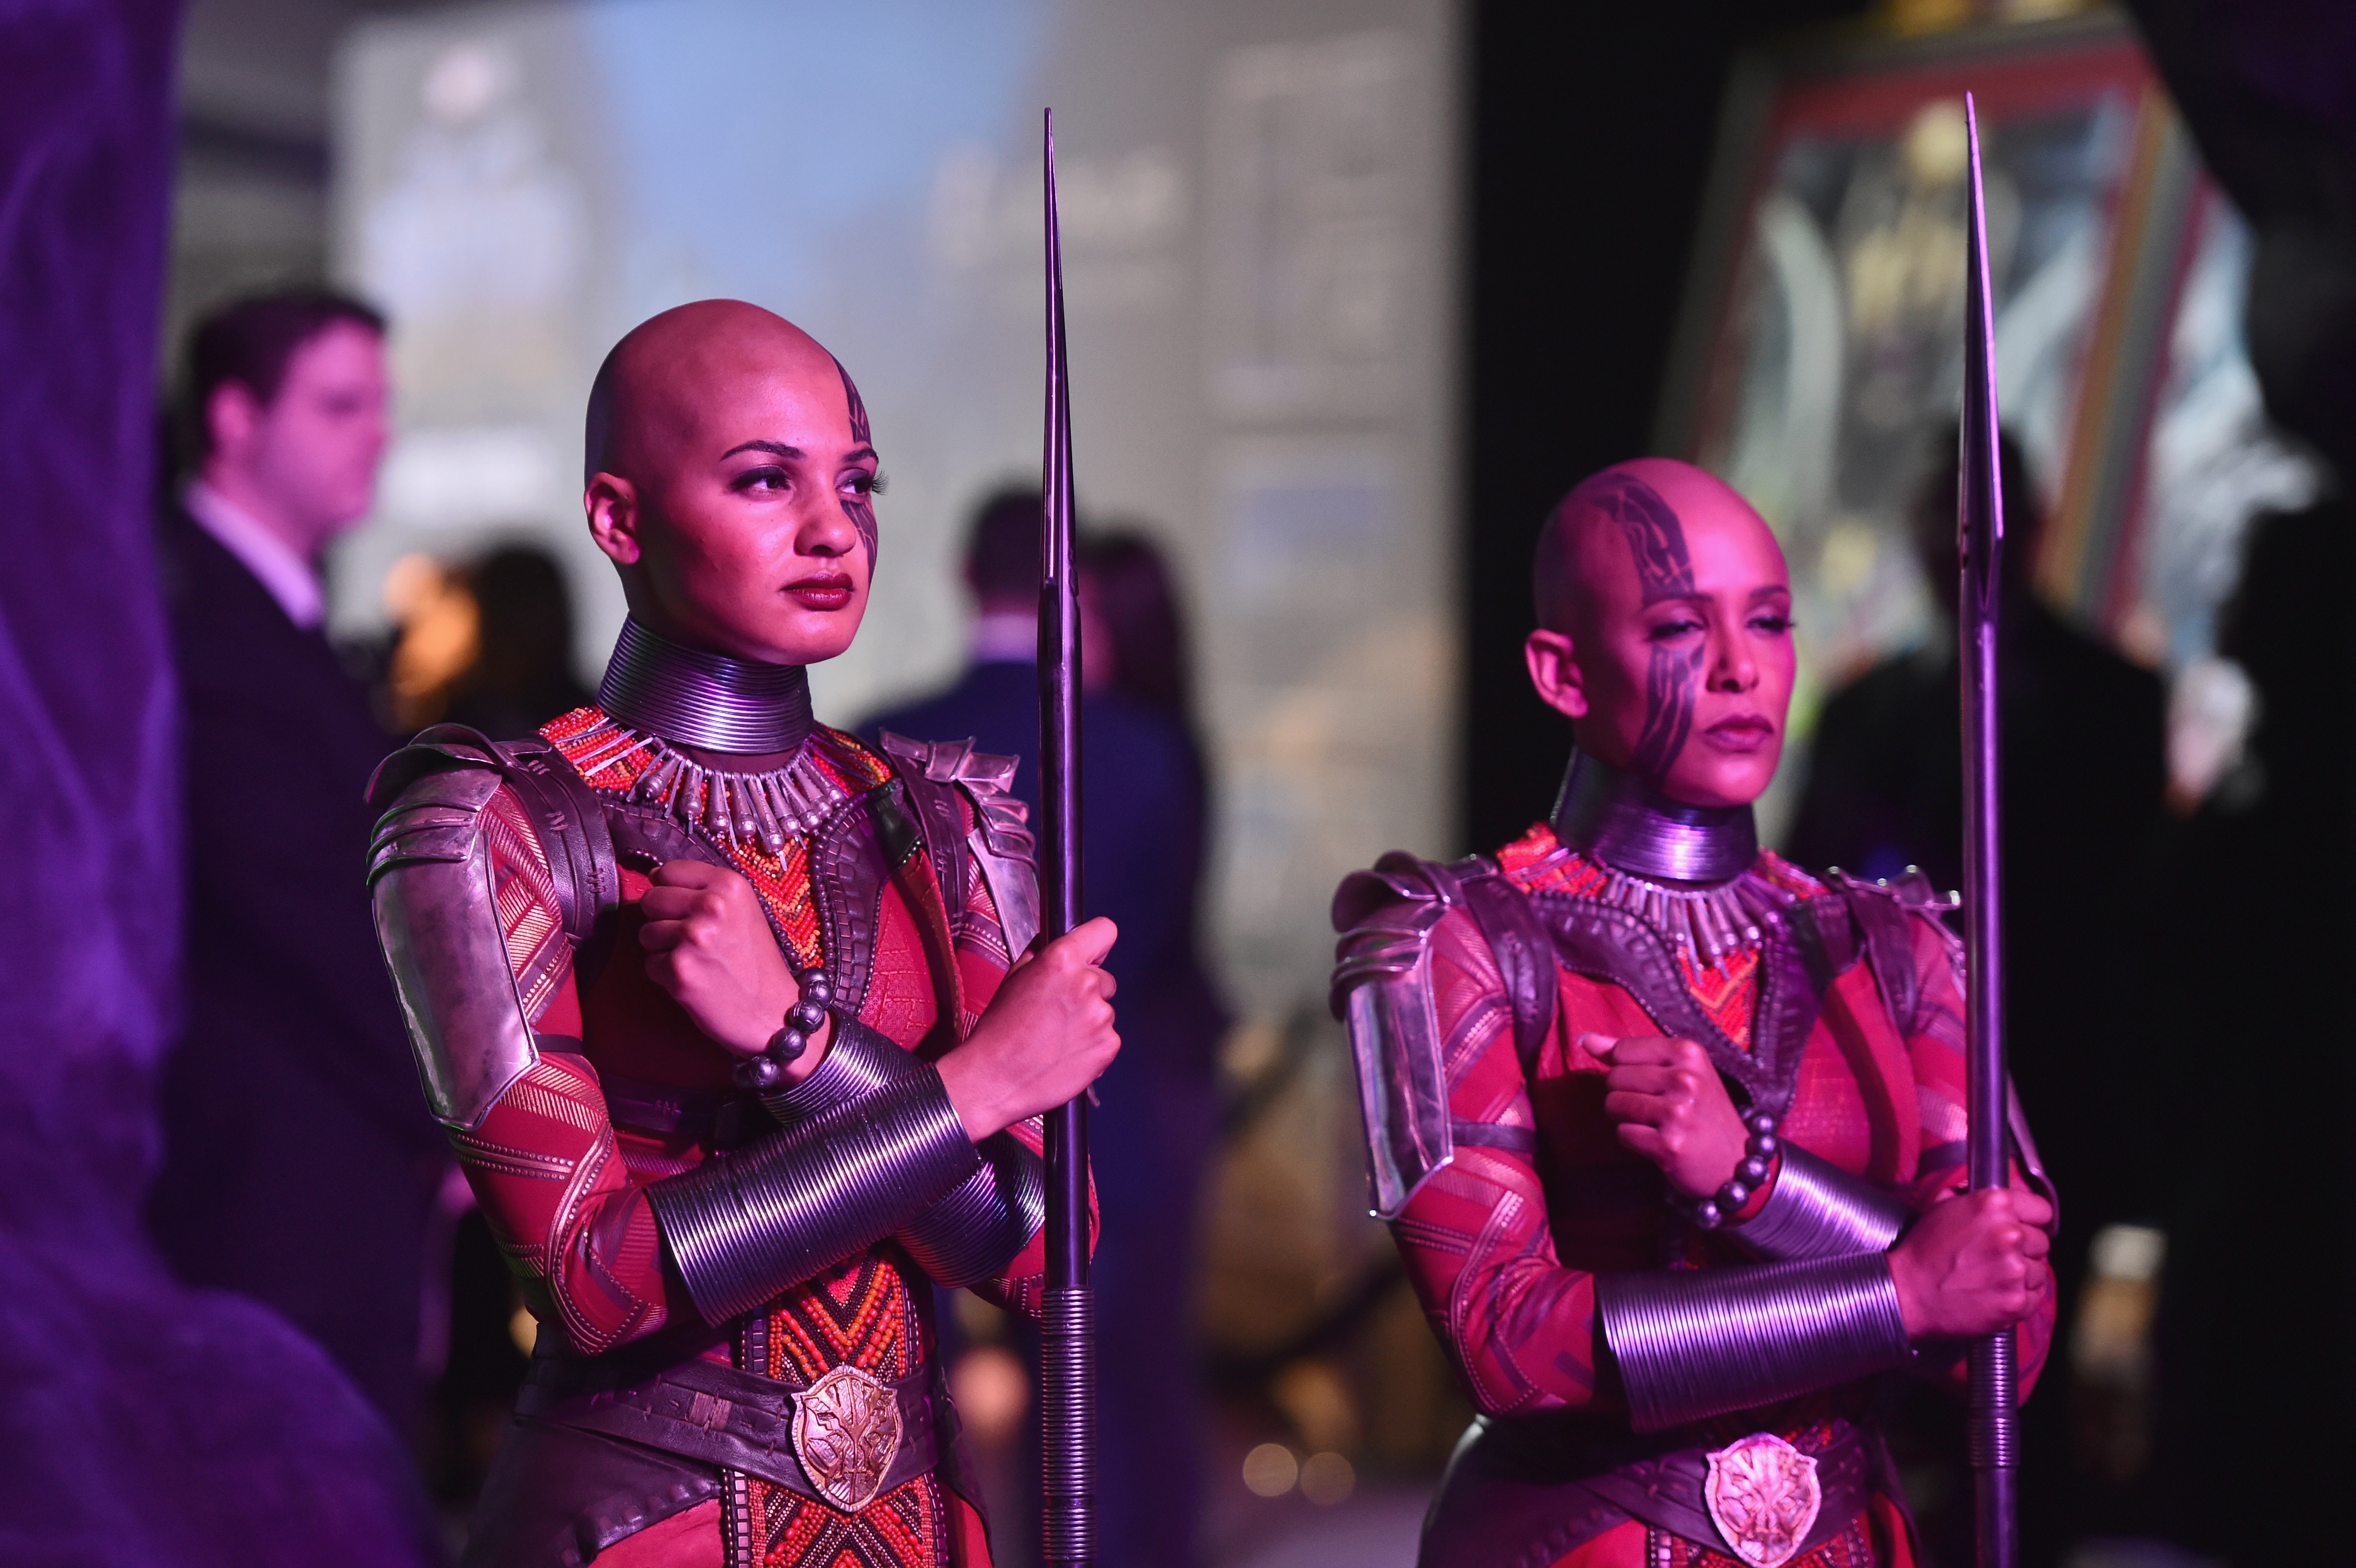 HOLLYWOOD, CA - JANUARY 29: View of atmosphere at the Los Angeles World Premiere of Marvel Studios' BLACK PANTHER at Dolby Theatre on January 29, 2018 in Hollywood, California.